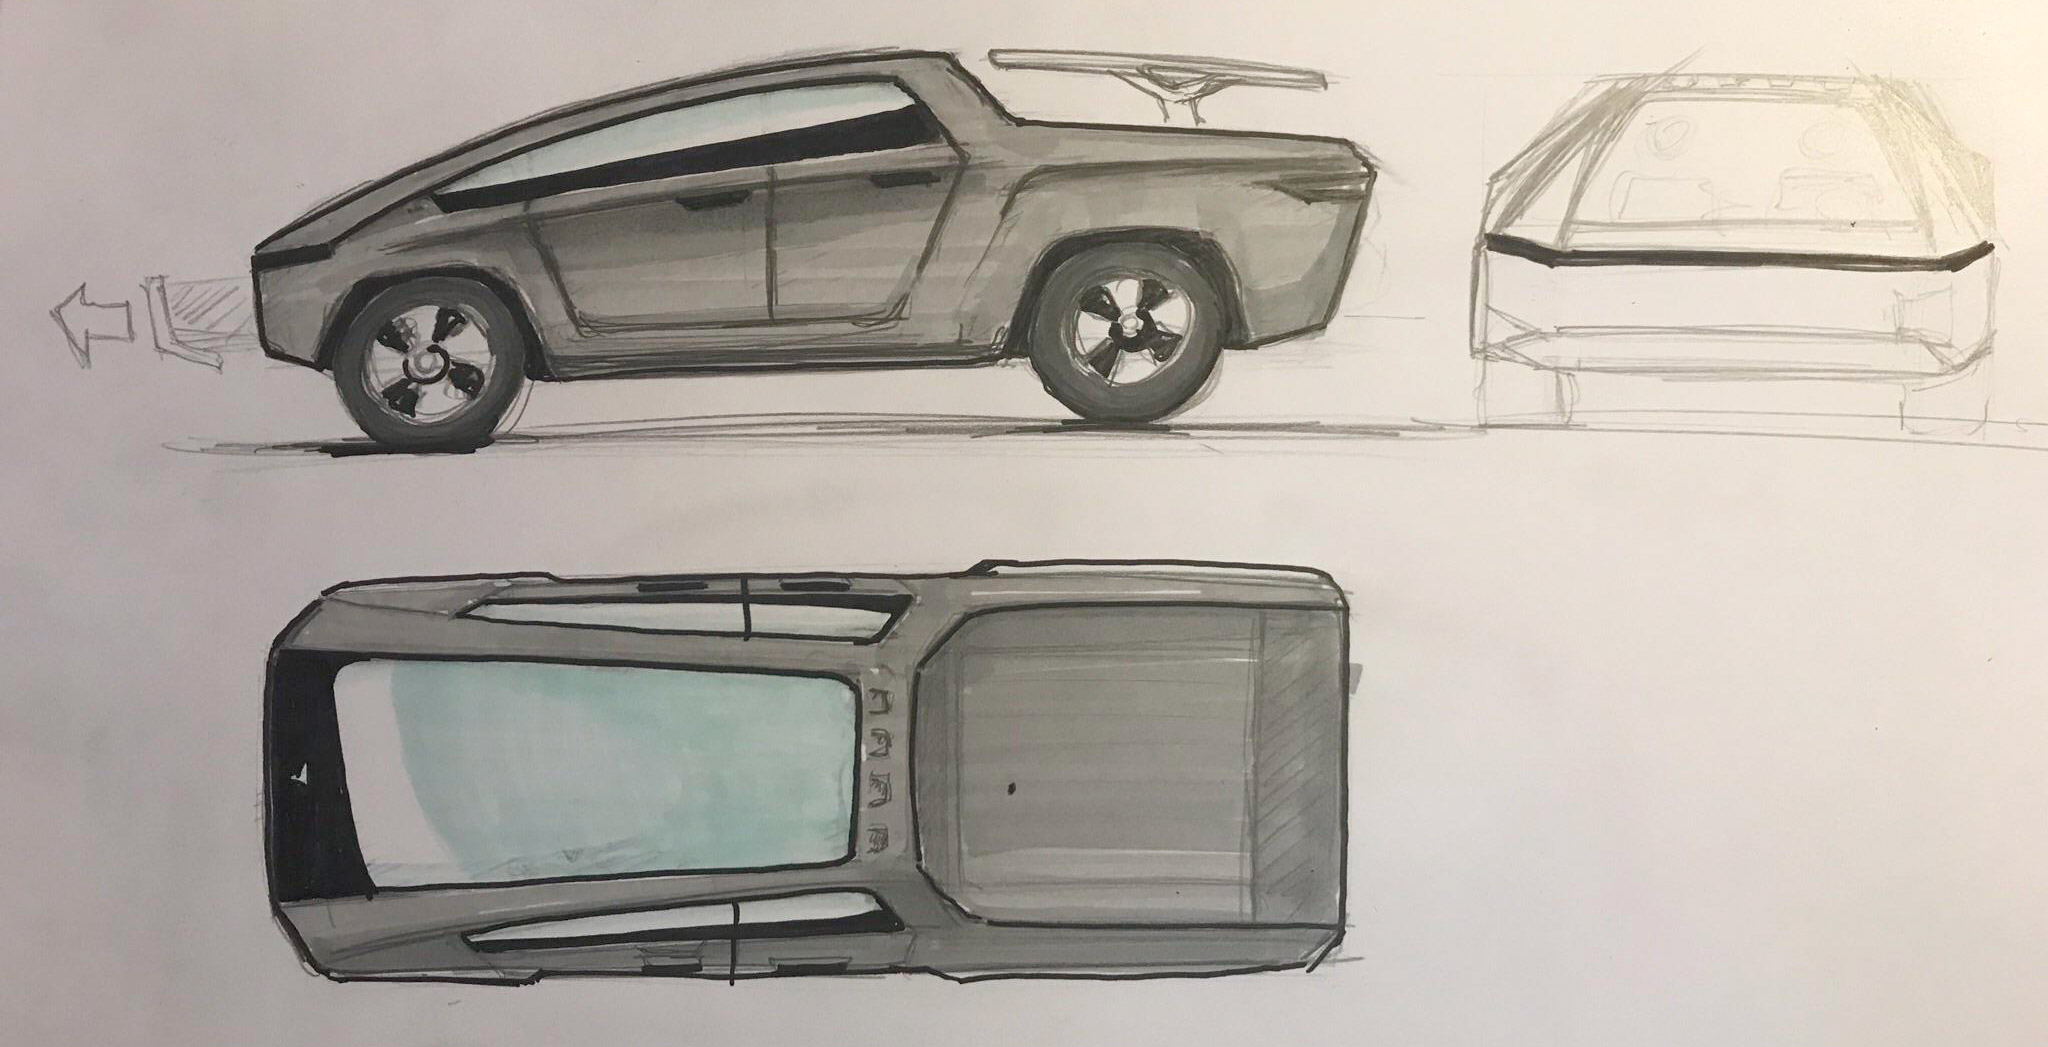 Tesla Pickup Truck sketch with front, side and roof views.